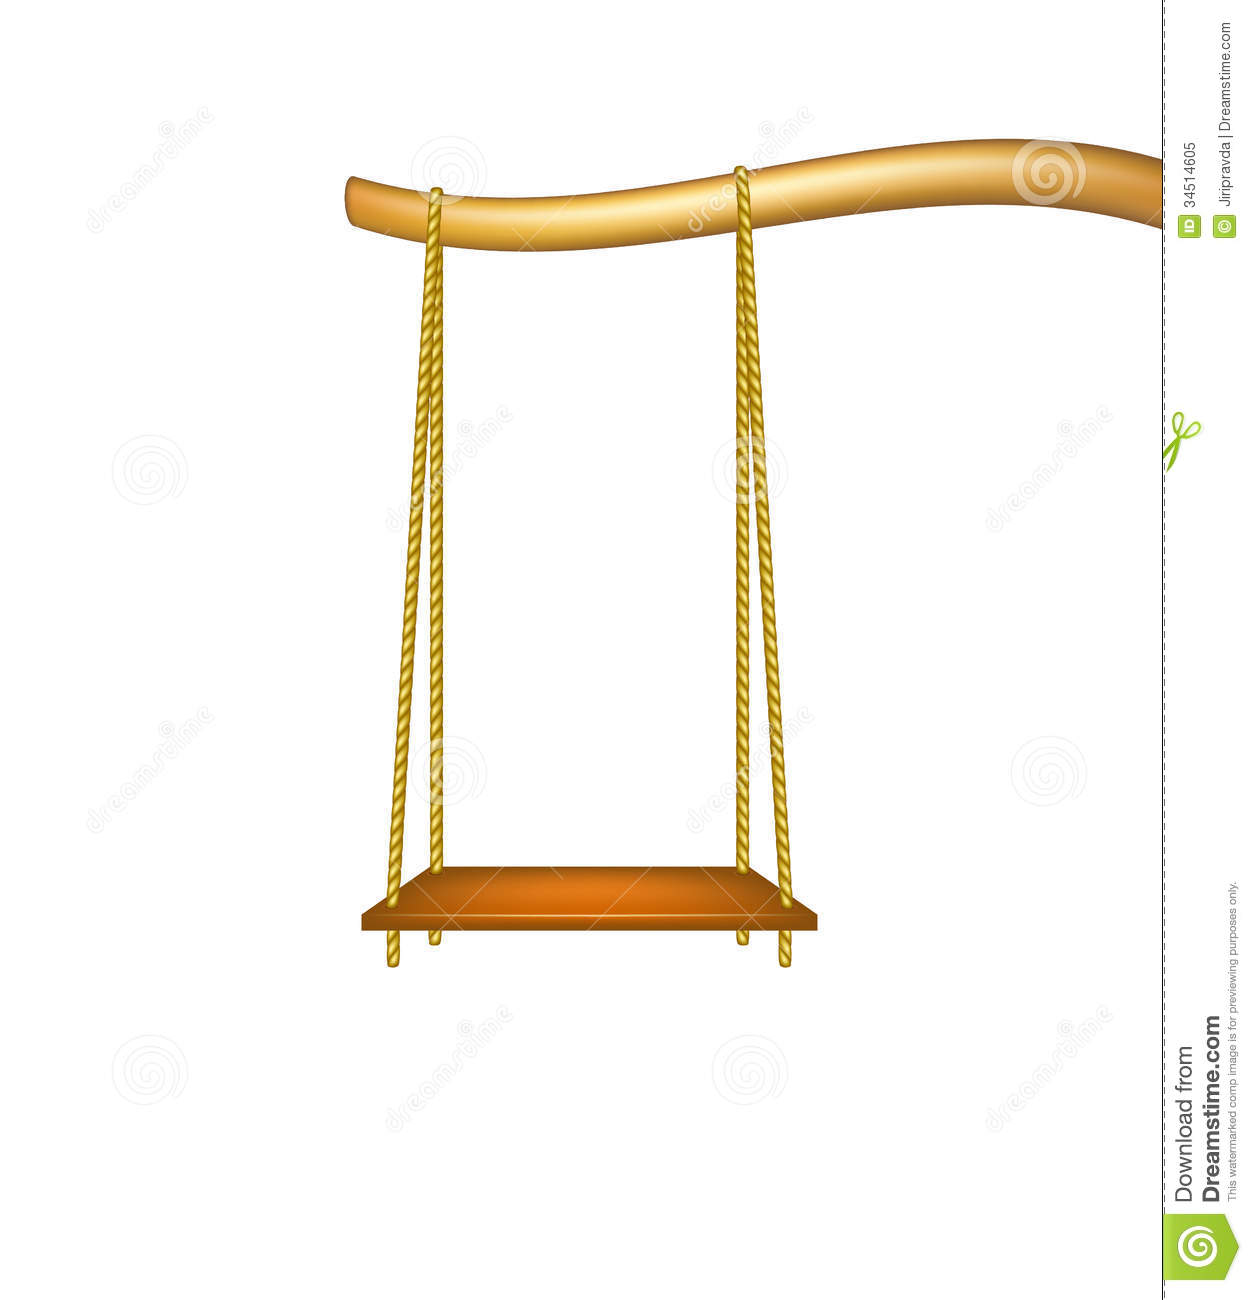 Tree swing clipart suggest